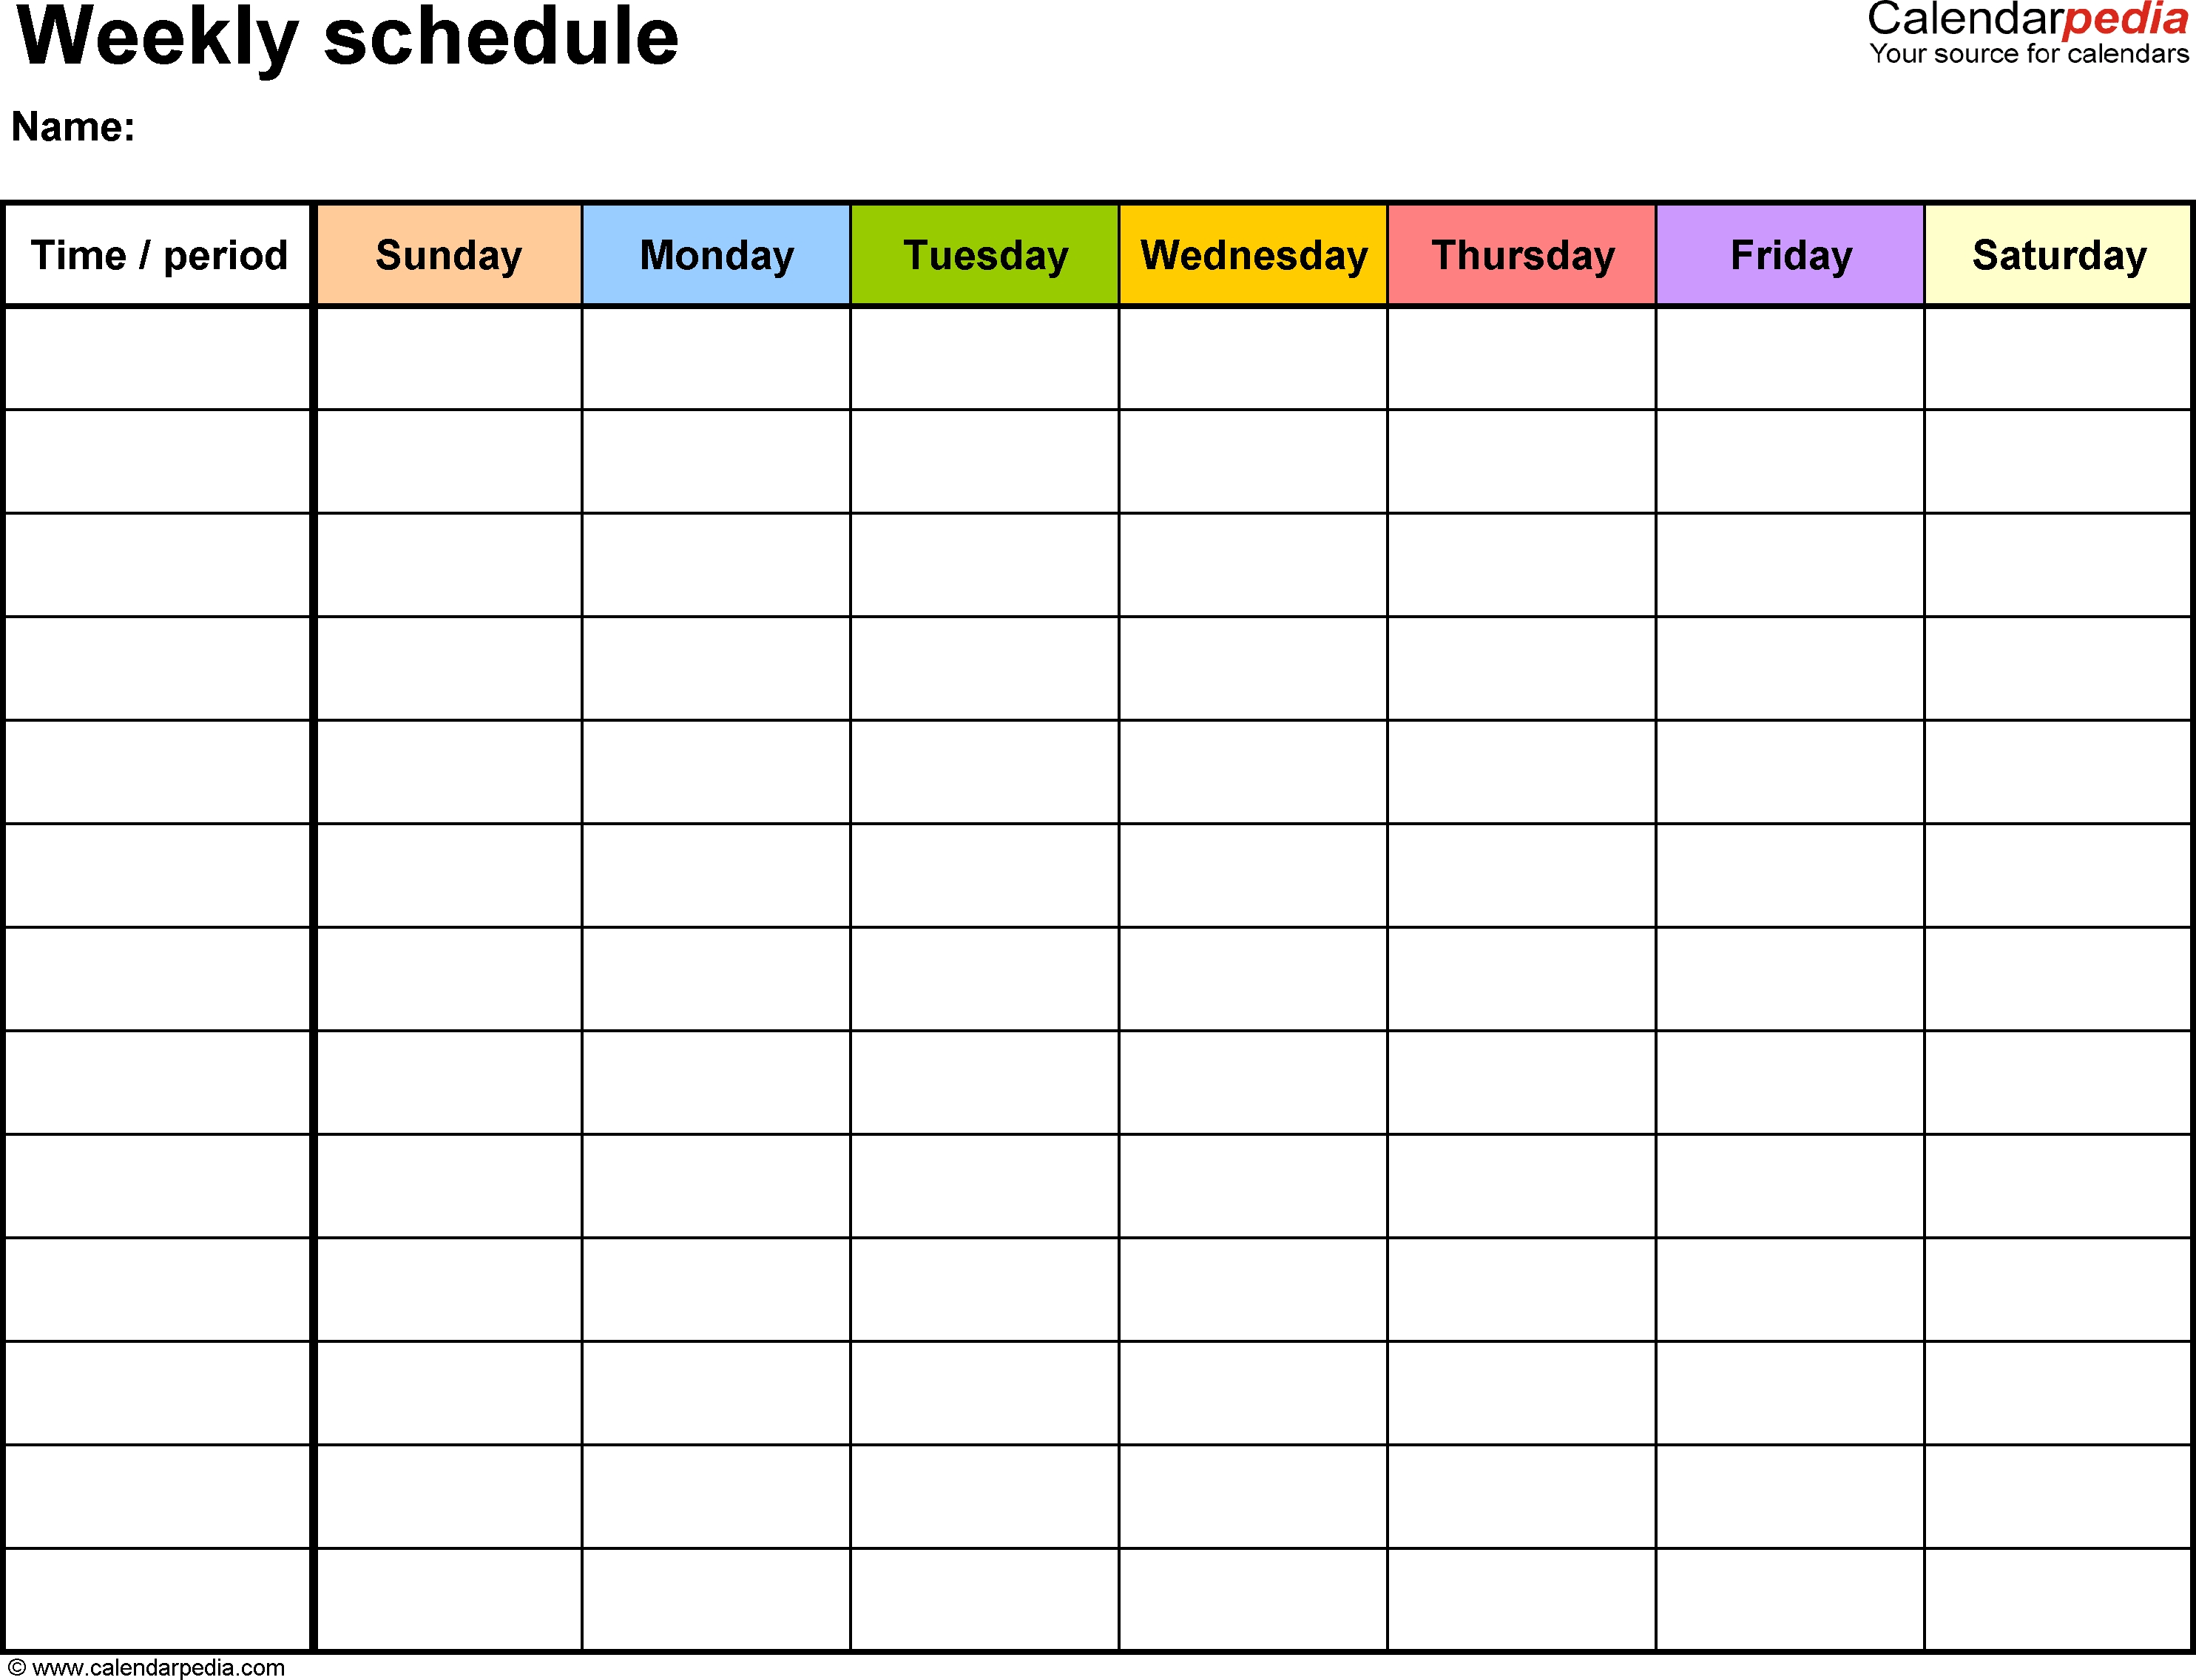 Free Weekly Schedule Templates For Word - 18 Templates with regard to Weekly Calendar Template 7 Day